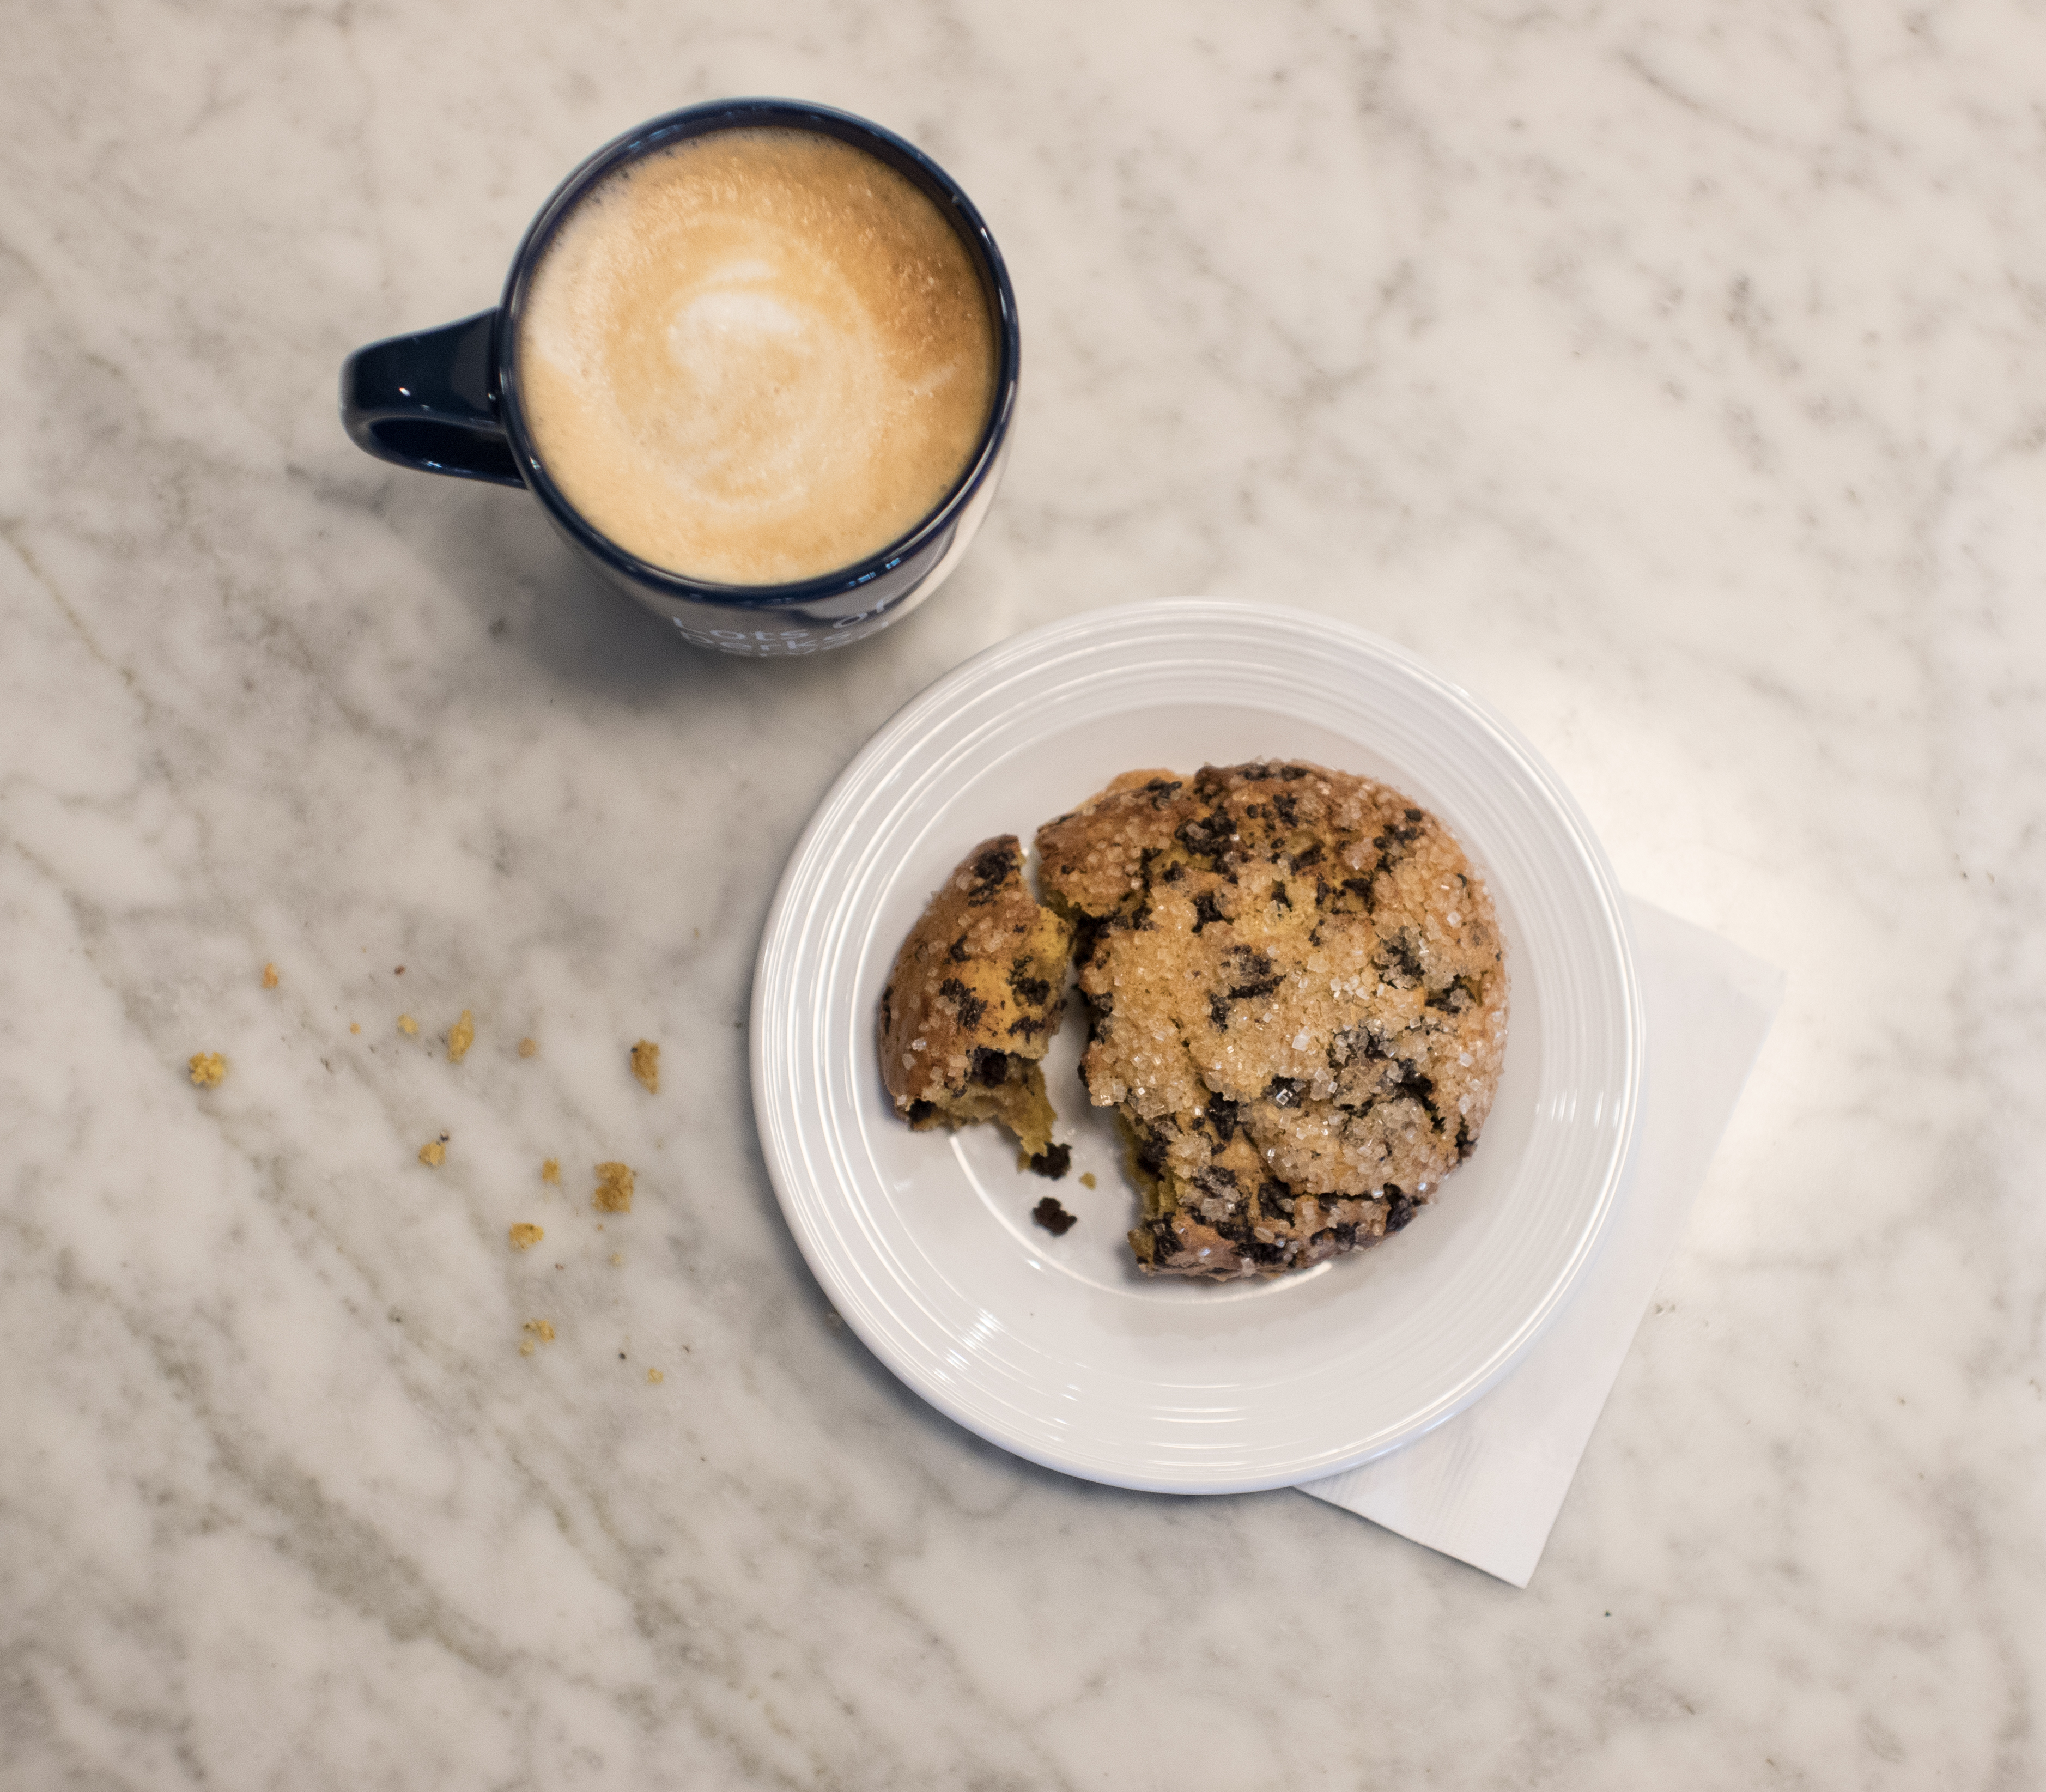 cup of coffee with a chocolate chip cookie